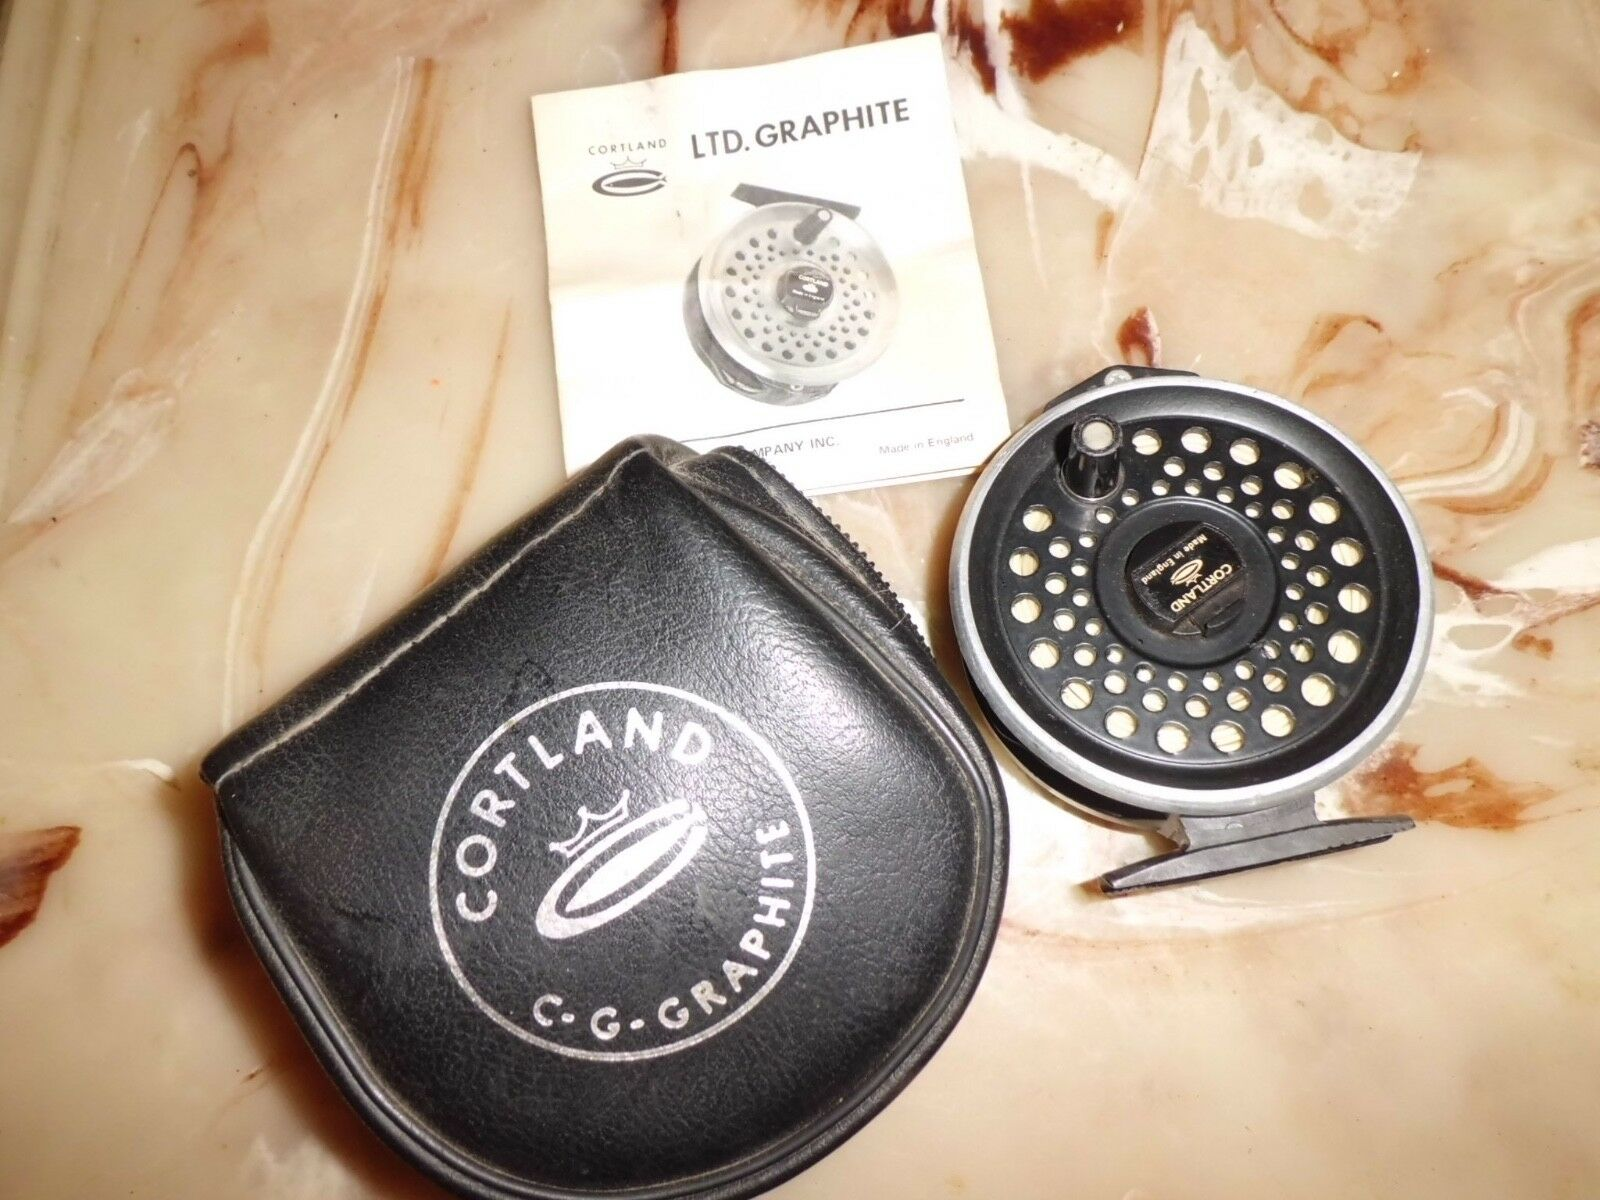 Cortland LTD Graphite Single Reel Action Fly Reel Single made in England e4a7c0